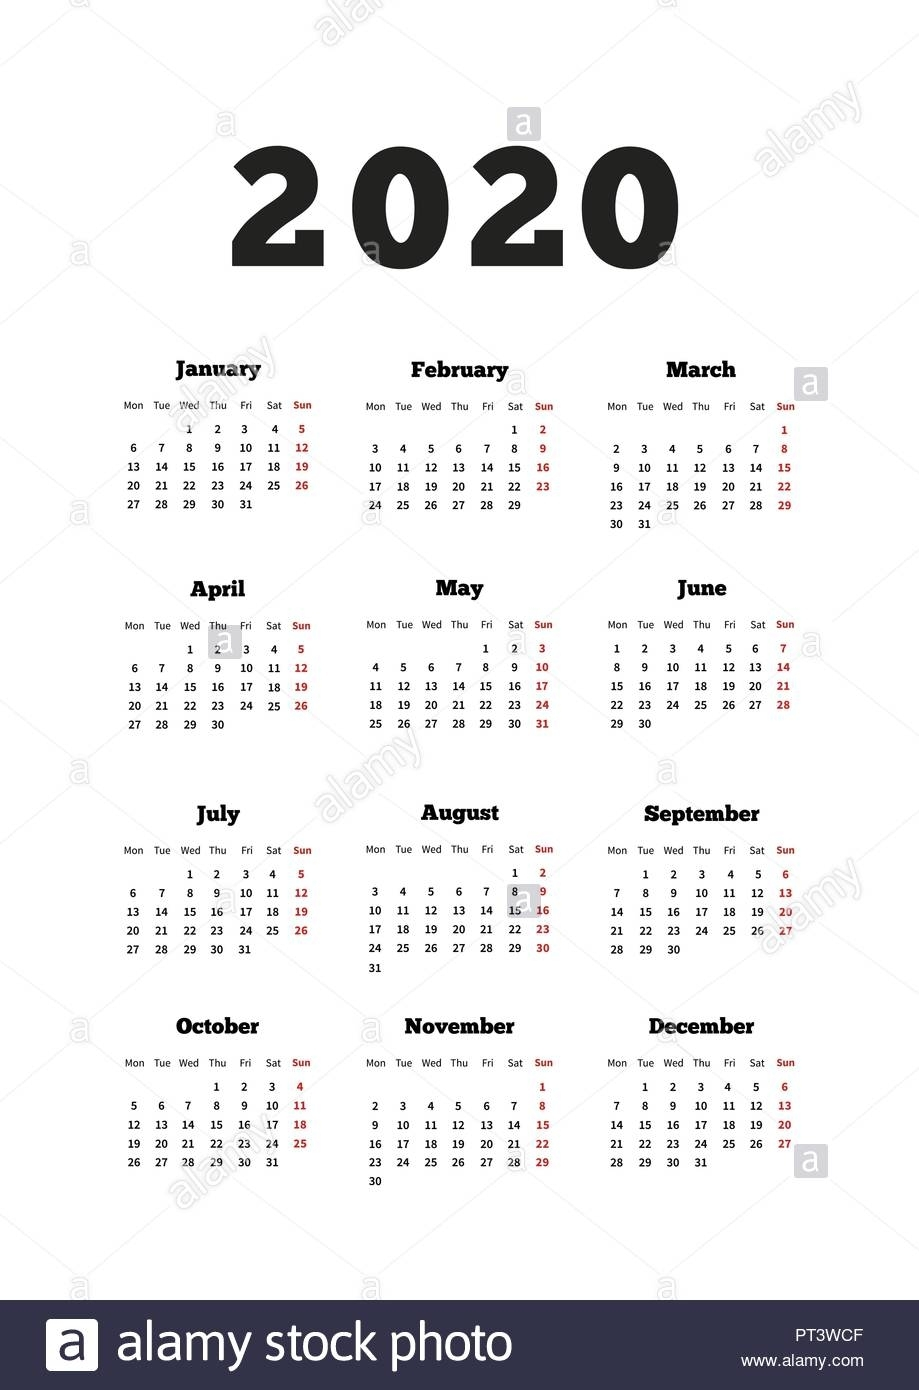 Calendar On 2020 Year With Week Starting From Monday, A4 regarding 2020 Calendar Starting On Moday